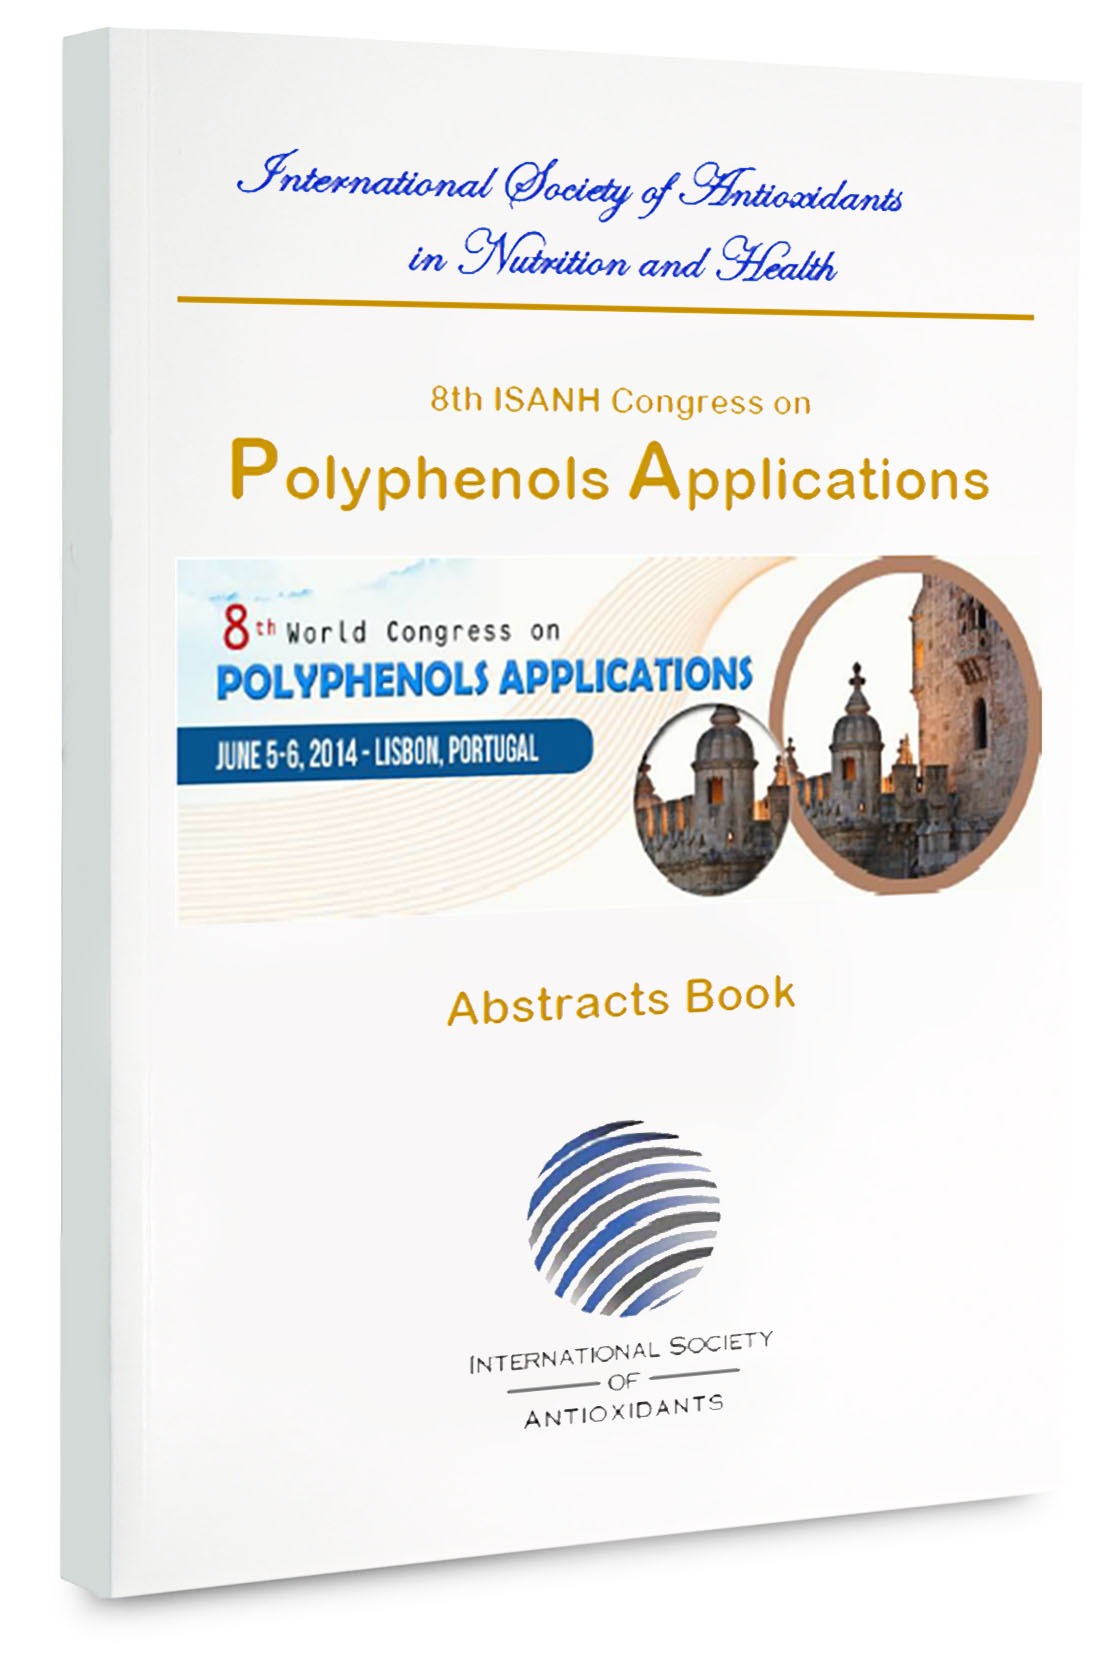 The Abstracts Book of Lisbon Polyphenols 2014 is now available